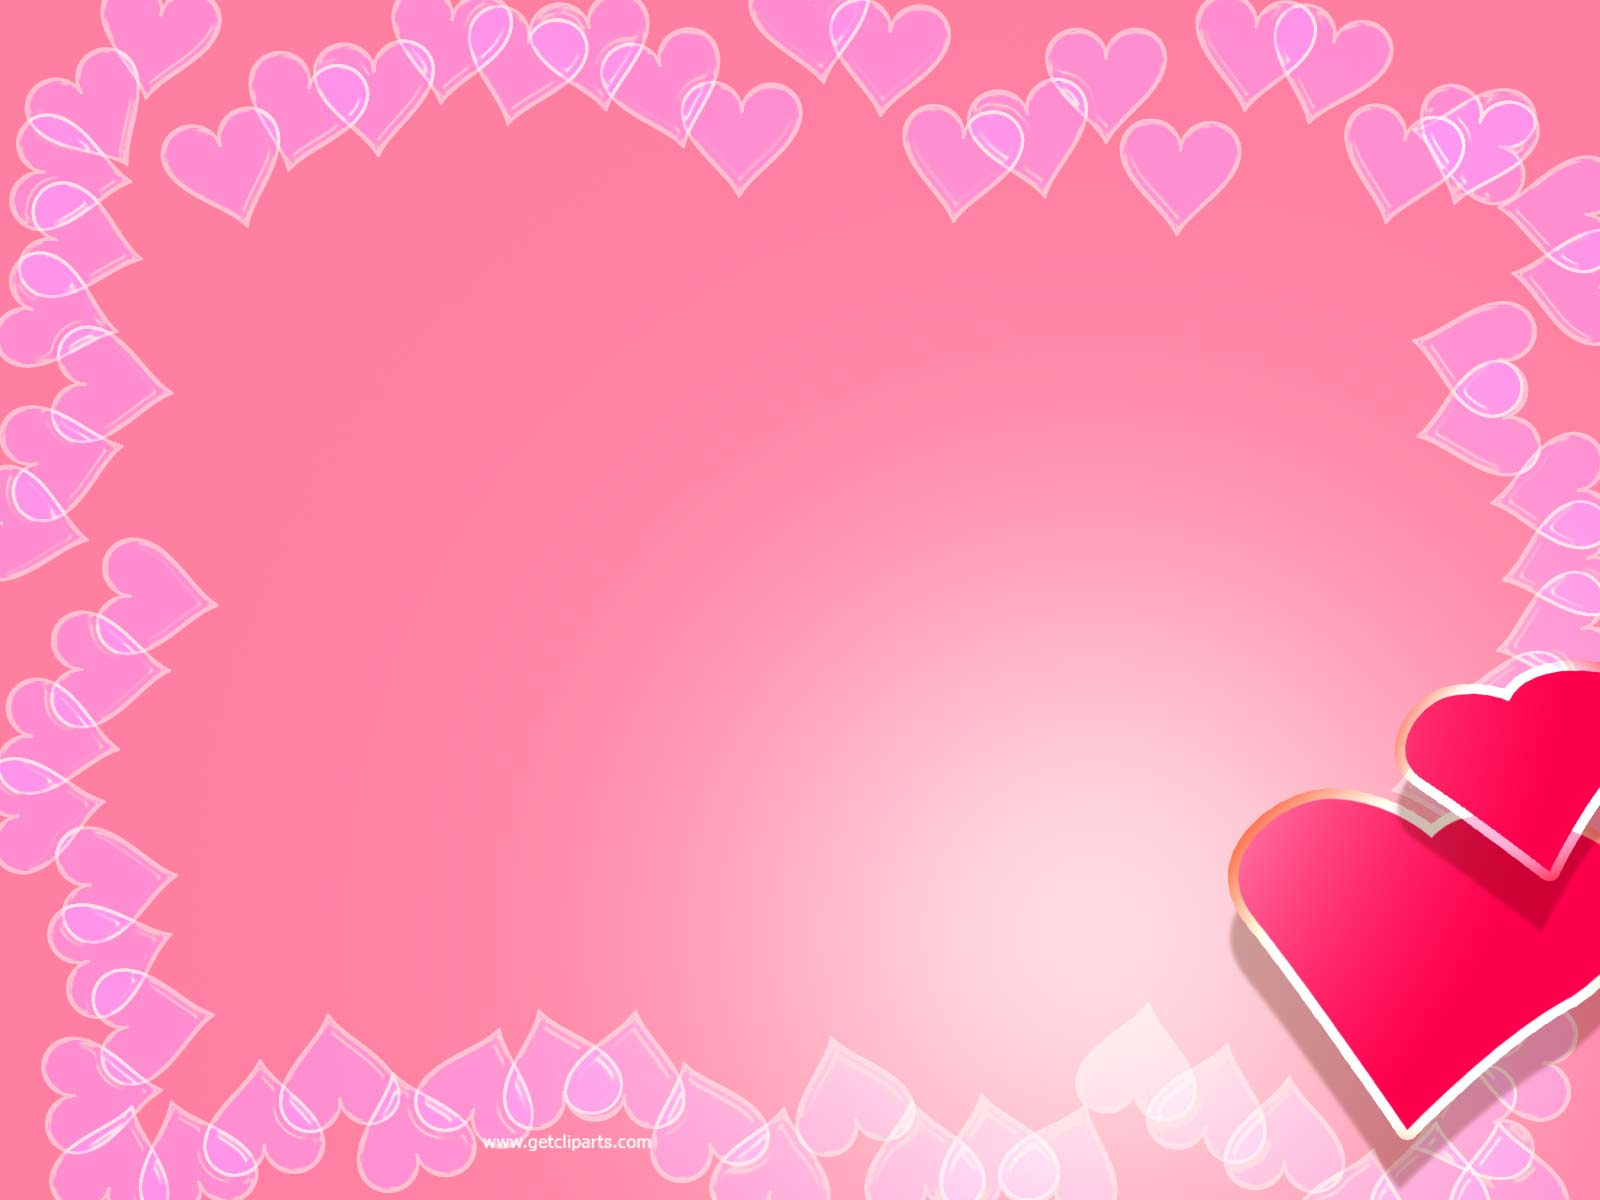 PPT template for Valentine theme. Hearts in gradient pink background ...